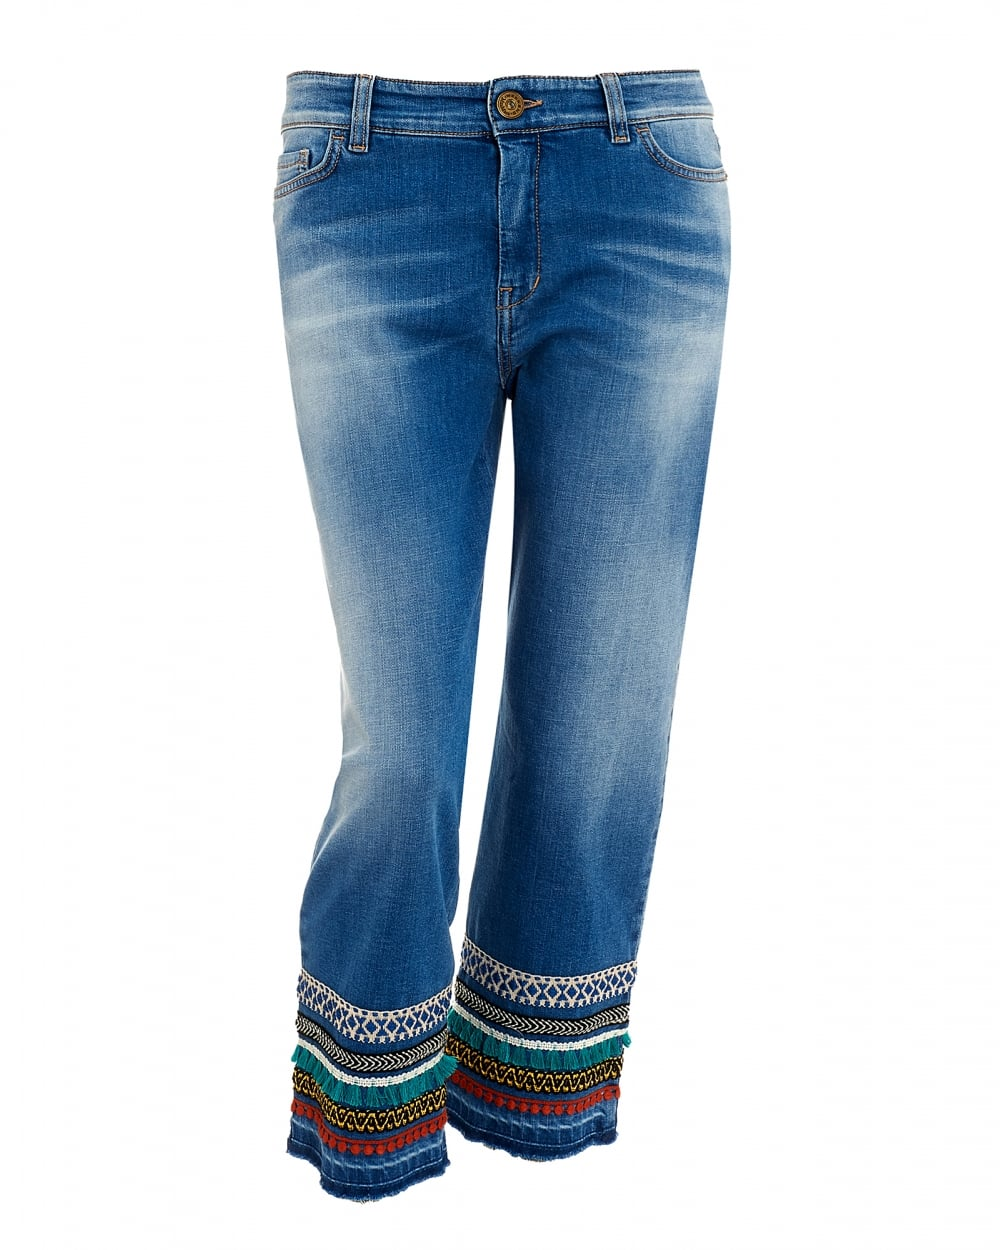 Max mara weekend womens jeans cropped embroidered denim